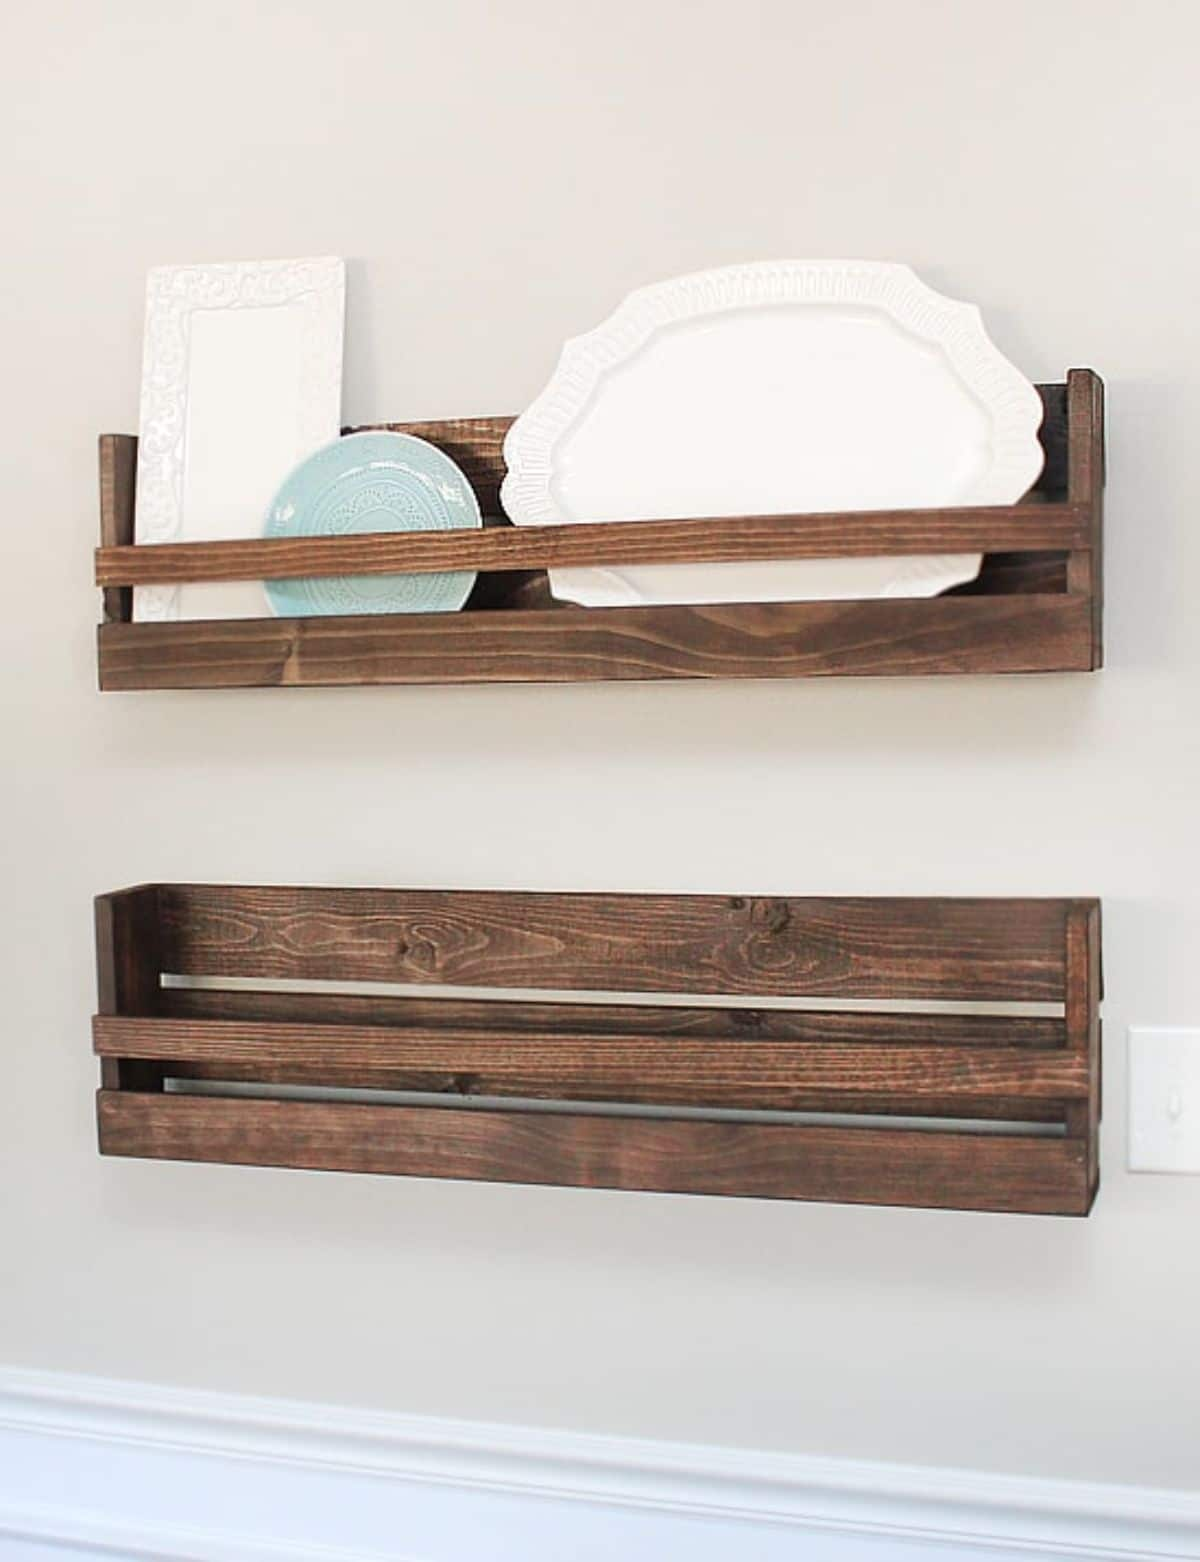 On a cream wall are 2 dark wooden spice racks. In the top rack are some different sized plates